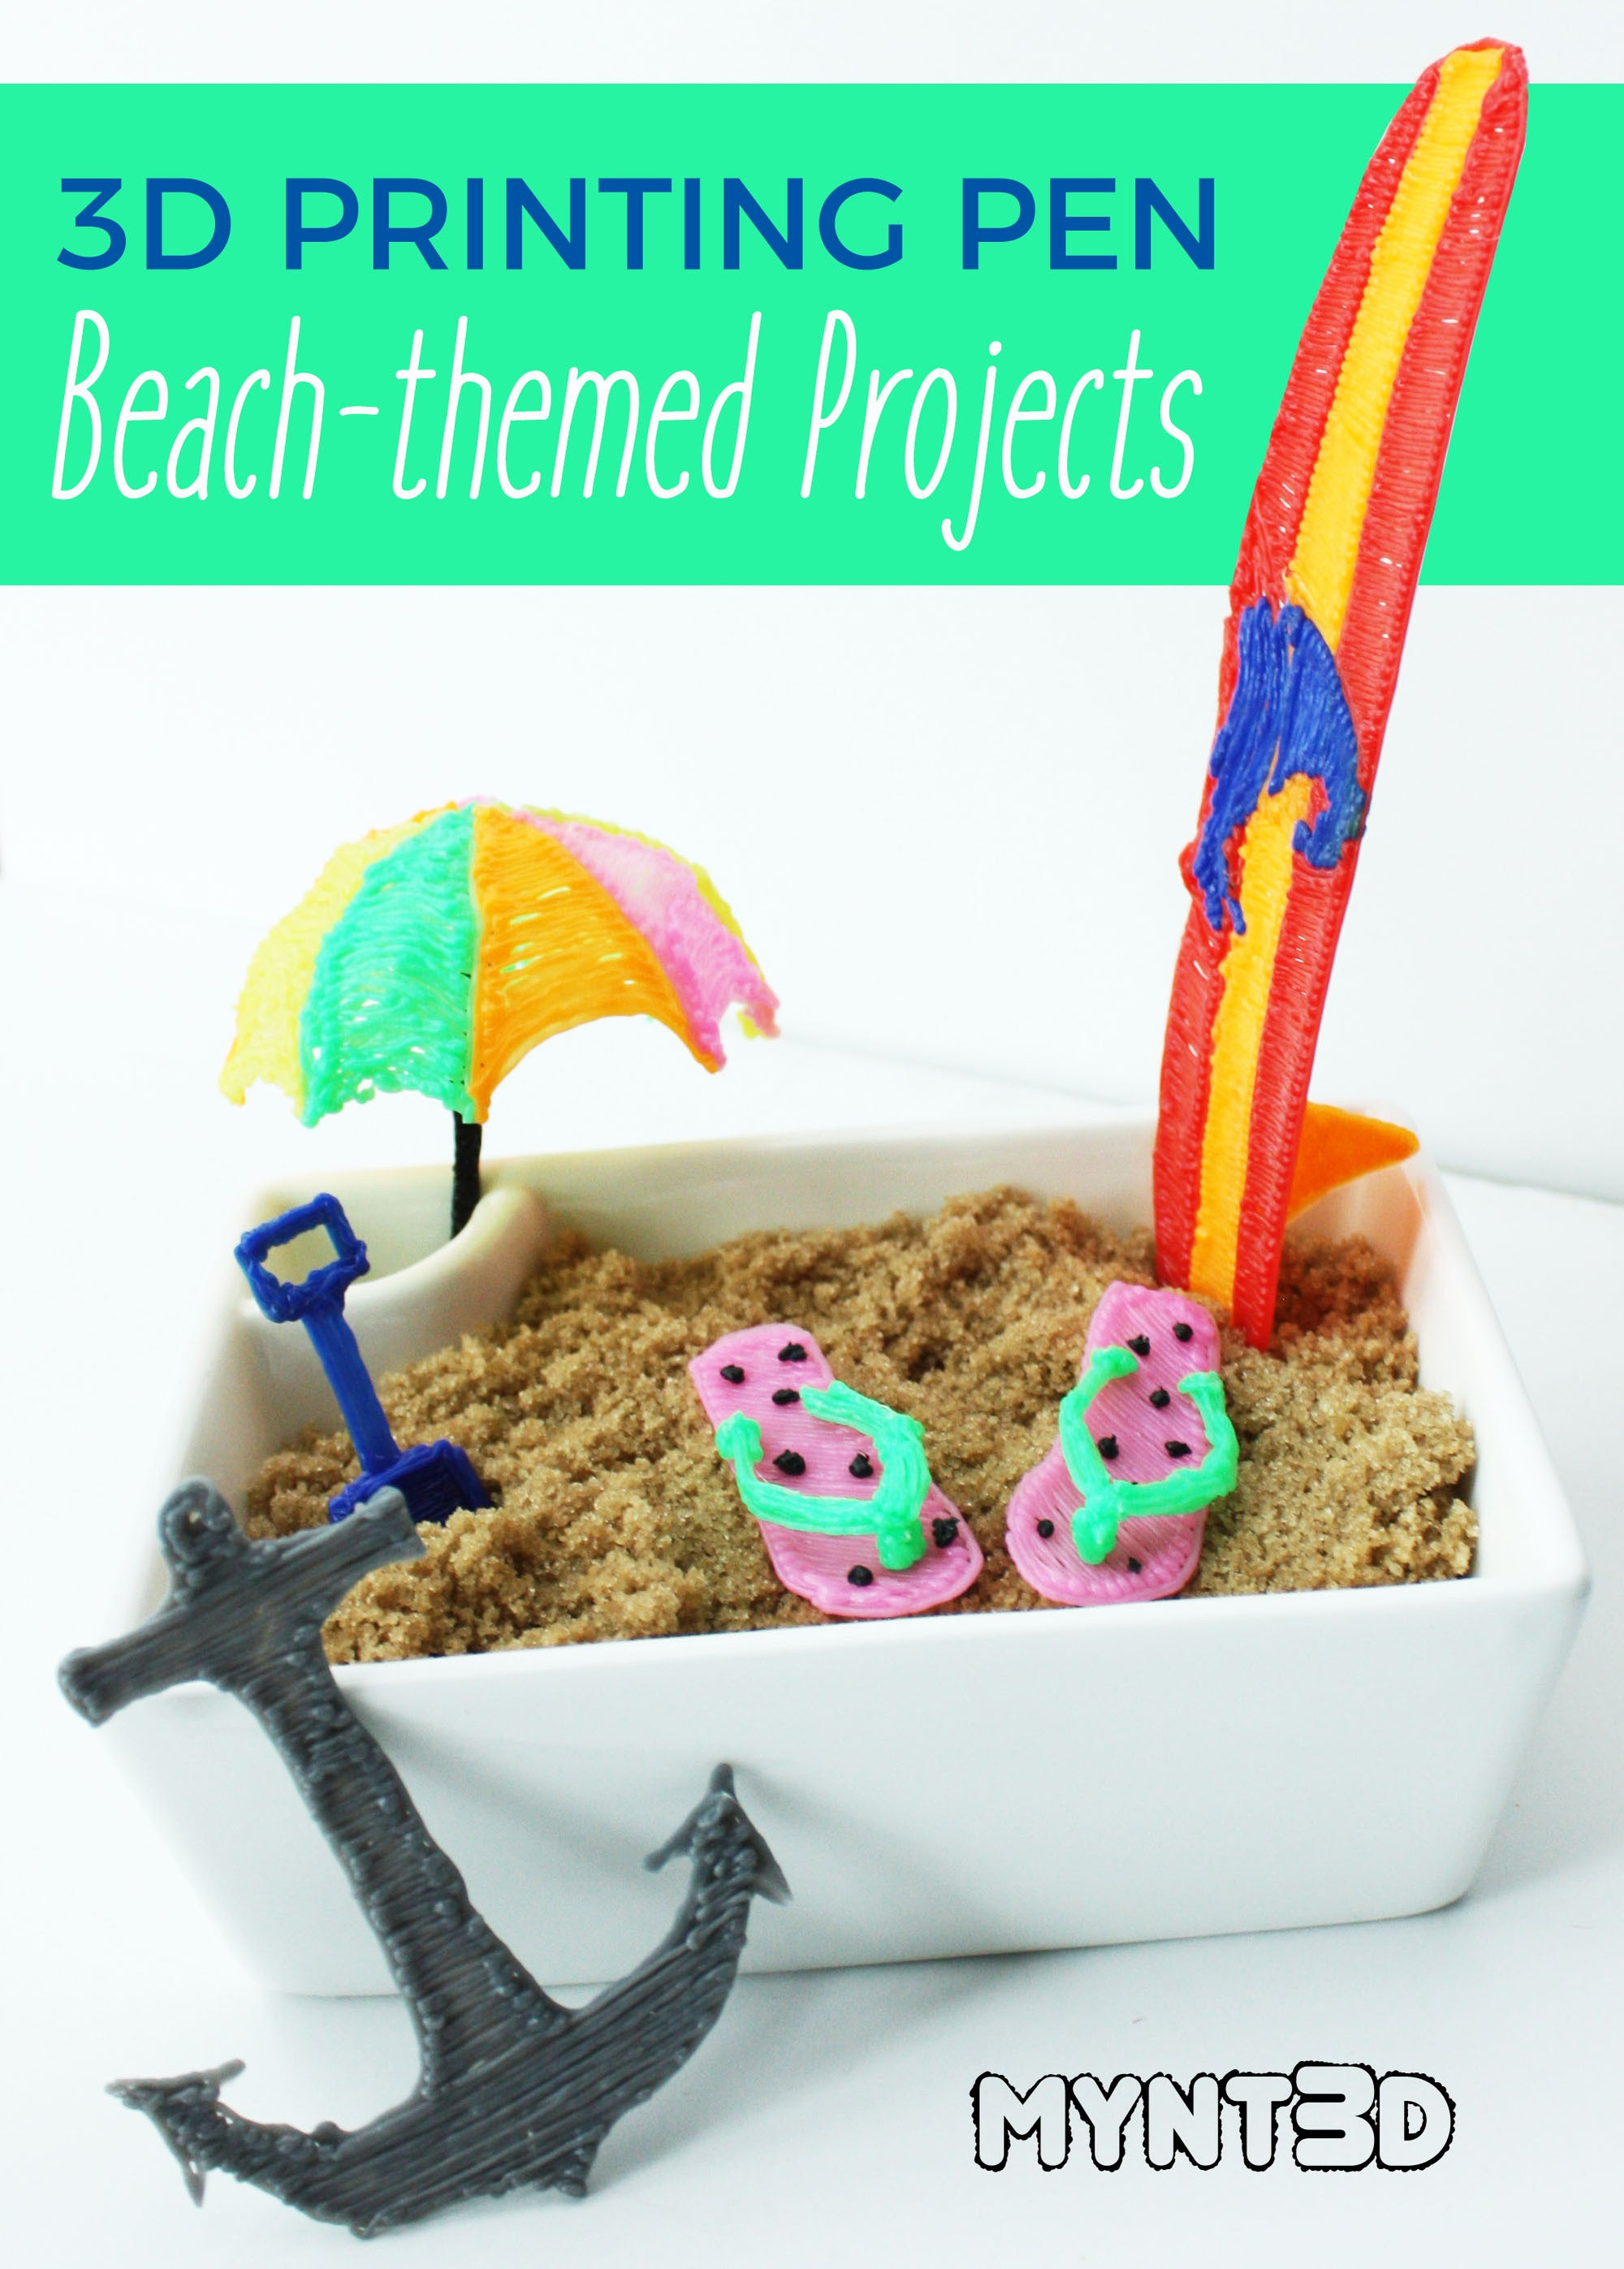 Beach-themed Projects Made with a 3D Printing Pen